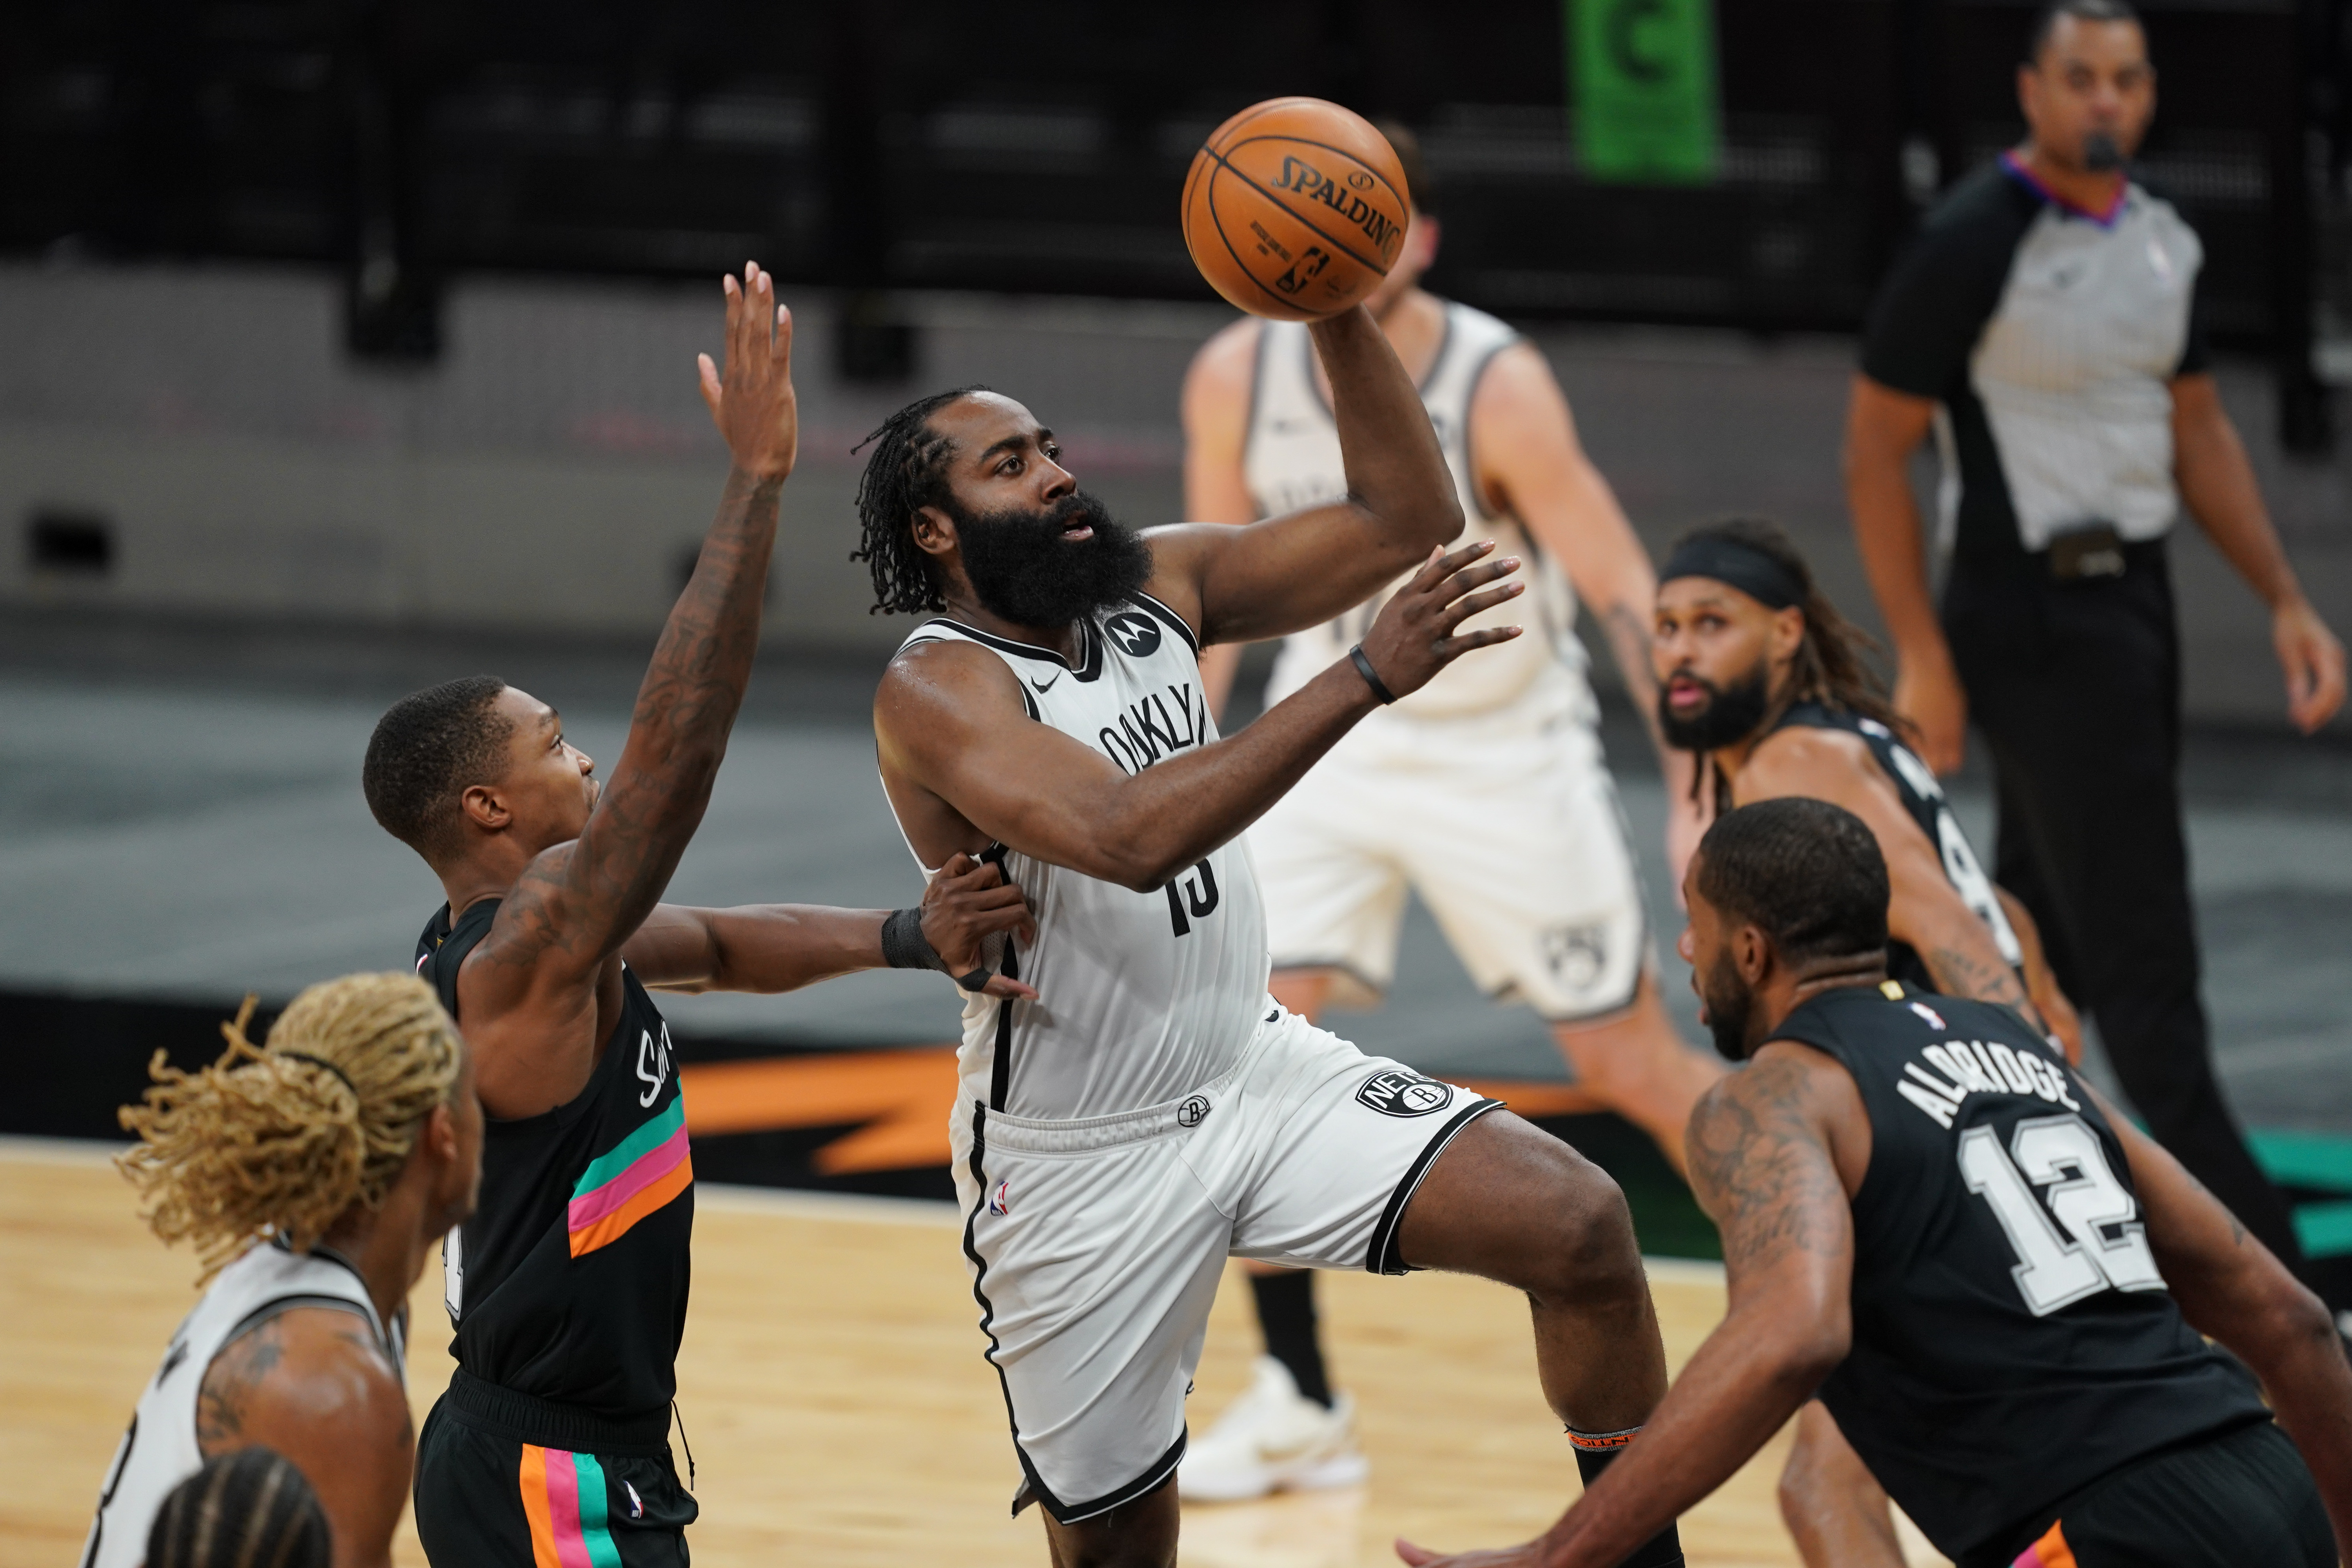 Mar 1, 2021; San Antonio, Texas, USA;  Brooklyn Nets guard James Harden (13) shoots in the second half against the San Antonio Spurs at the AT&T Center. Mandatory Credit: Daniel Dunn-USA TODAY Sports